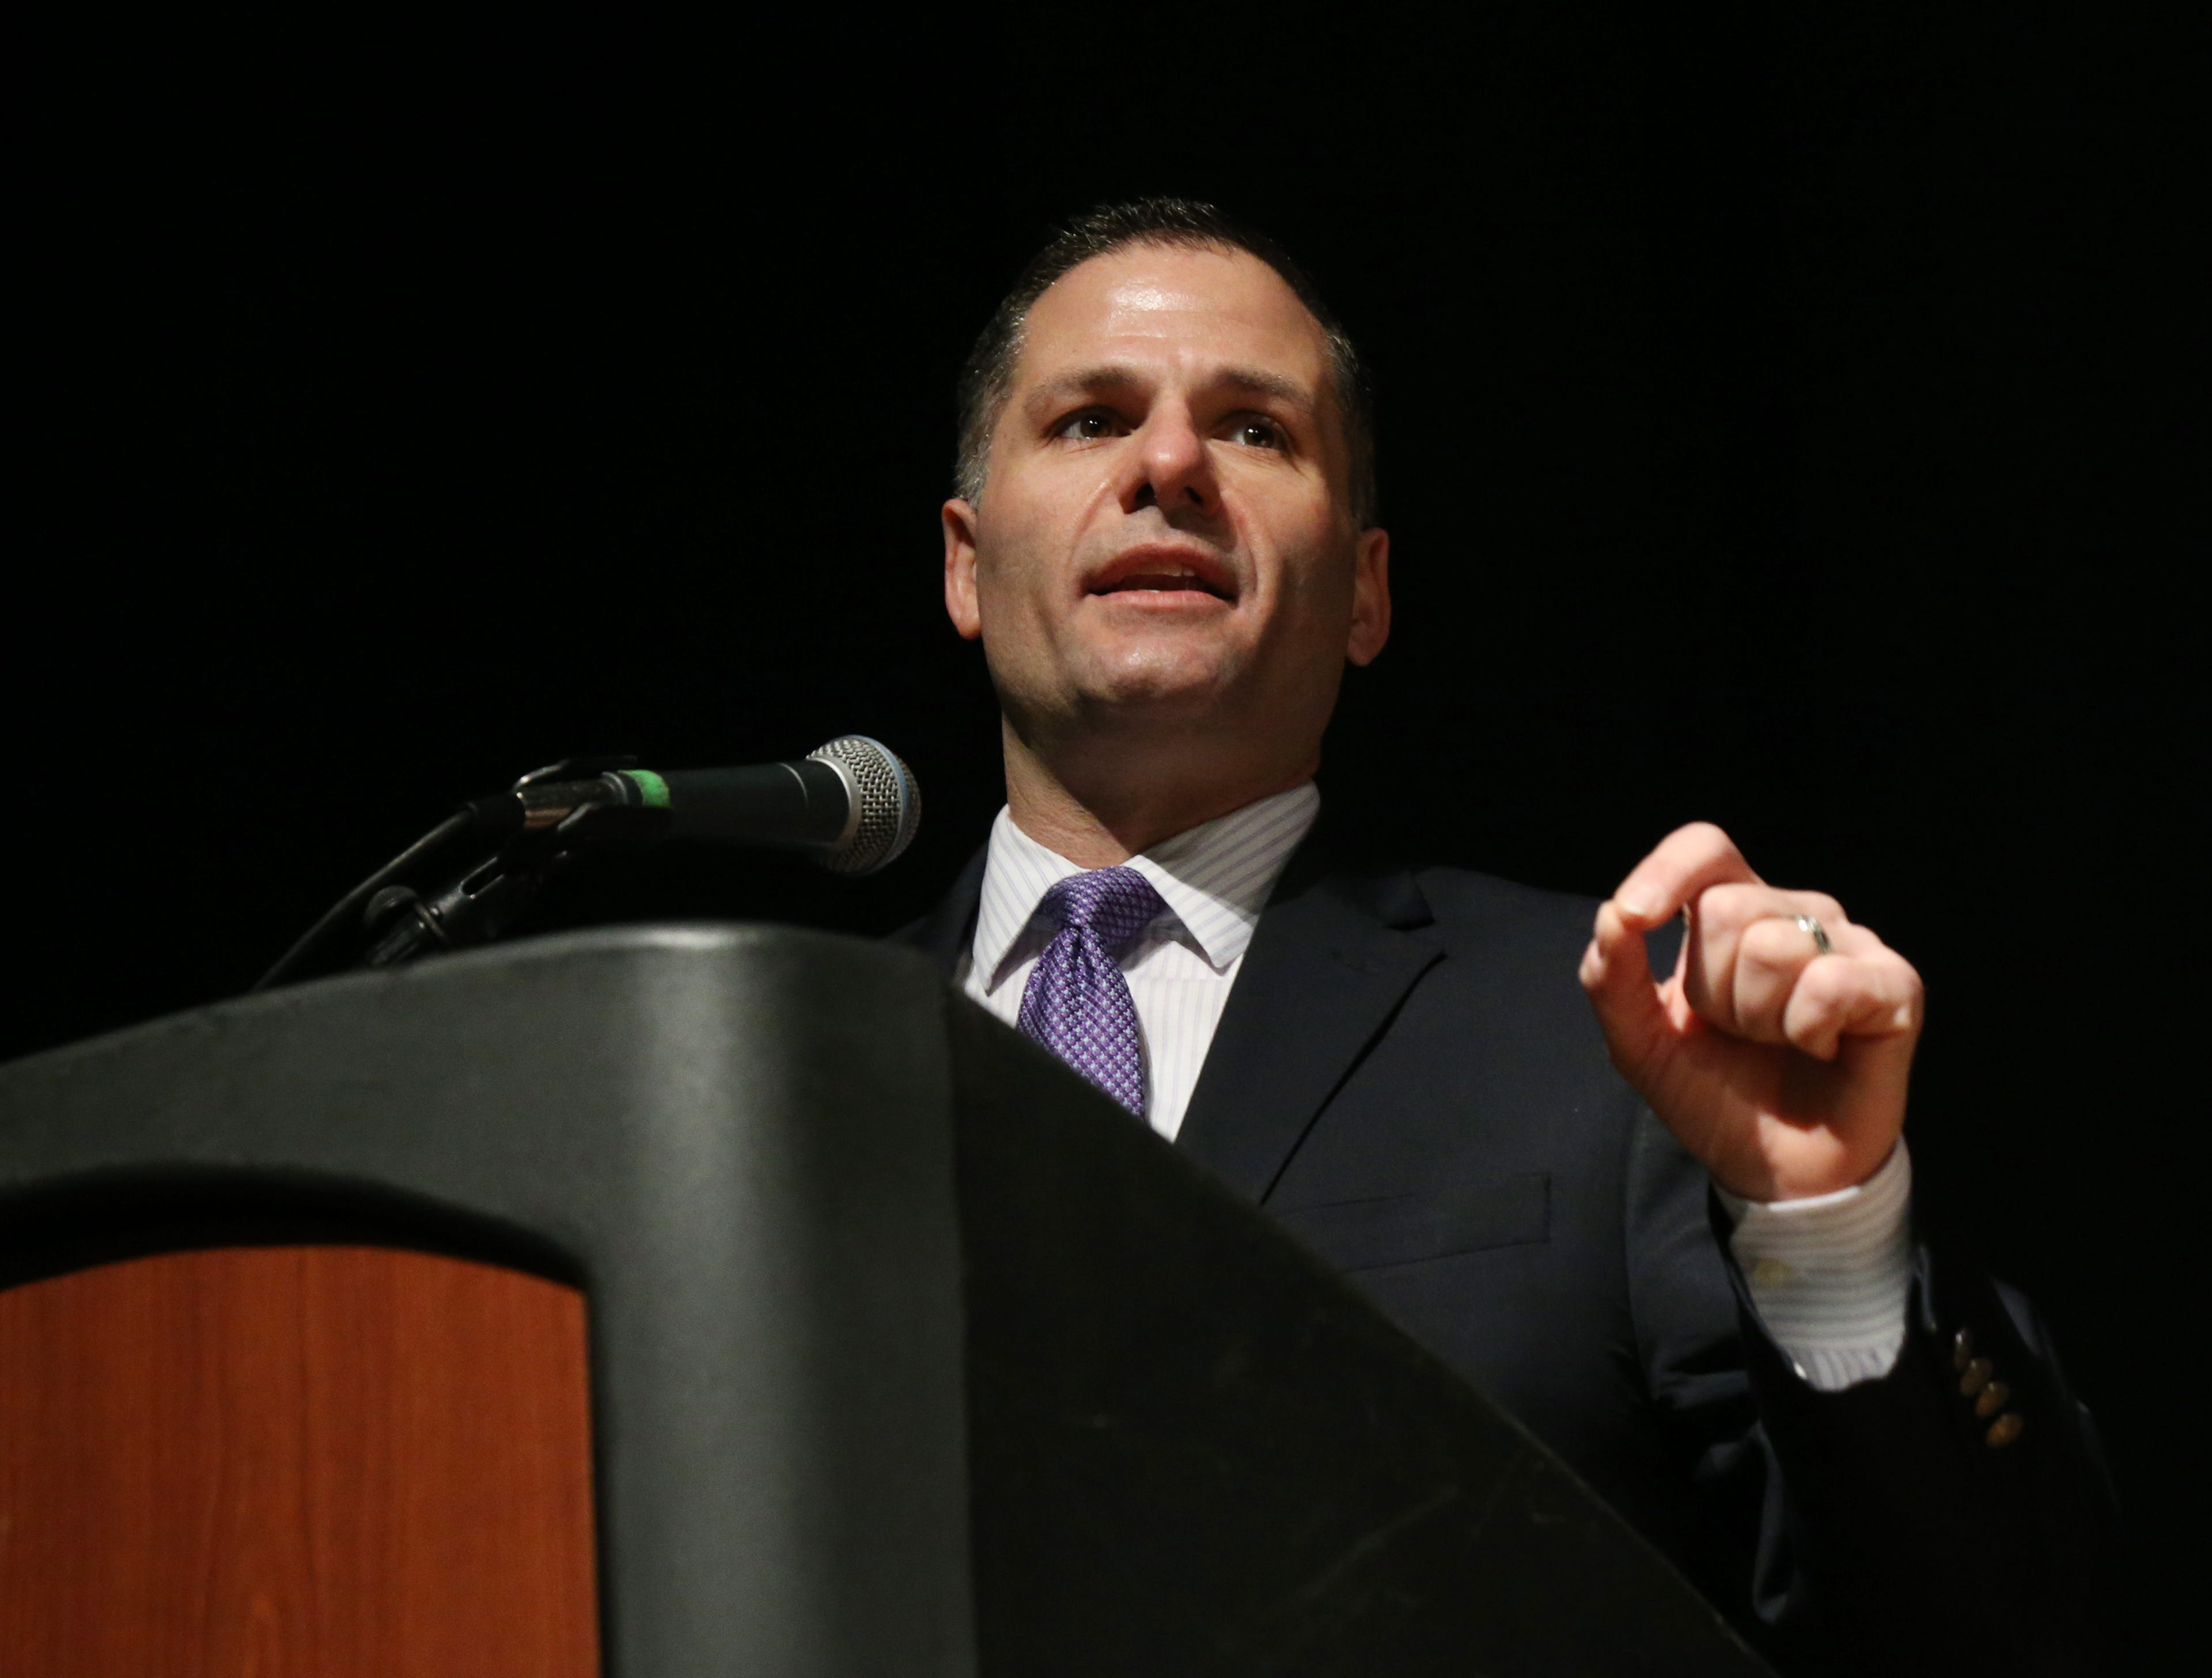 Dutchess County Executive Marc Molinaro speaks during the Martin Luther King Jr. Breakfast in the City of Poughkeepsie on January 25, 2019.